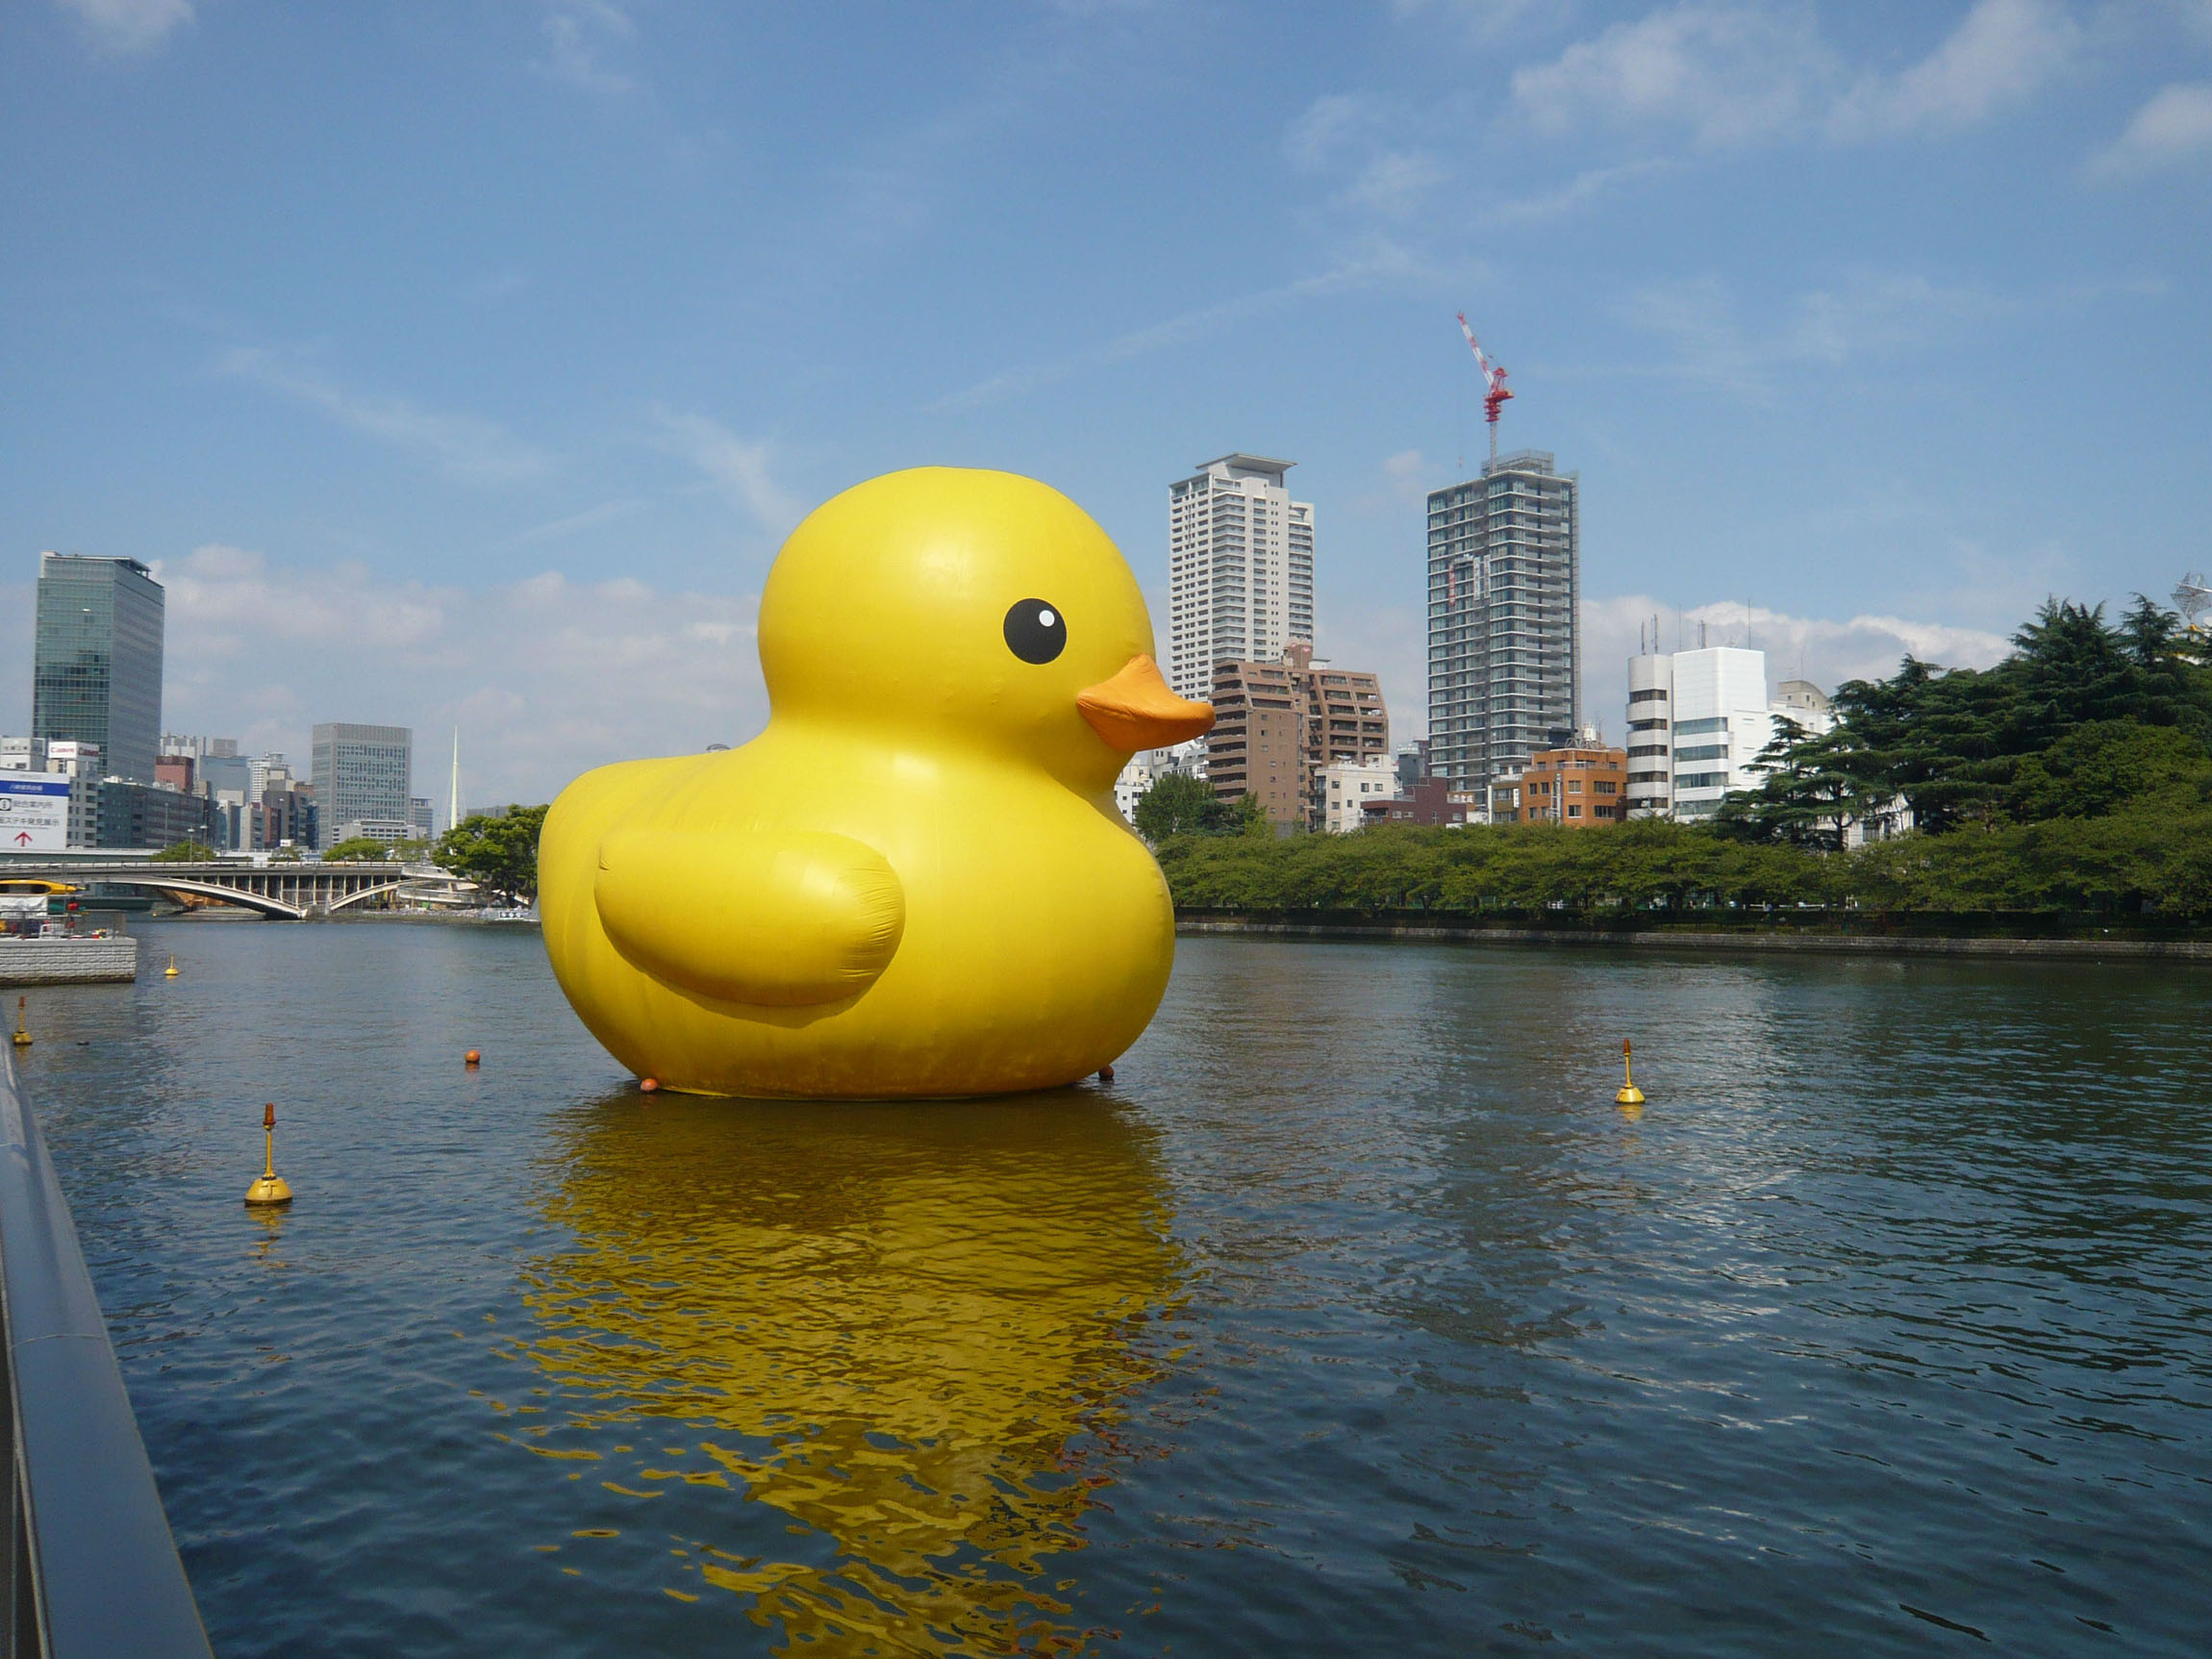 Giant Duck To Make Its Return The Japan Times